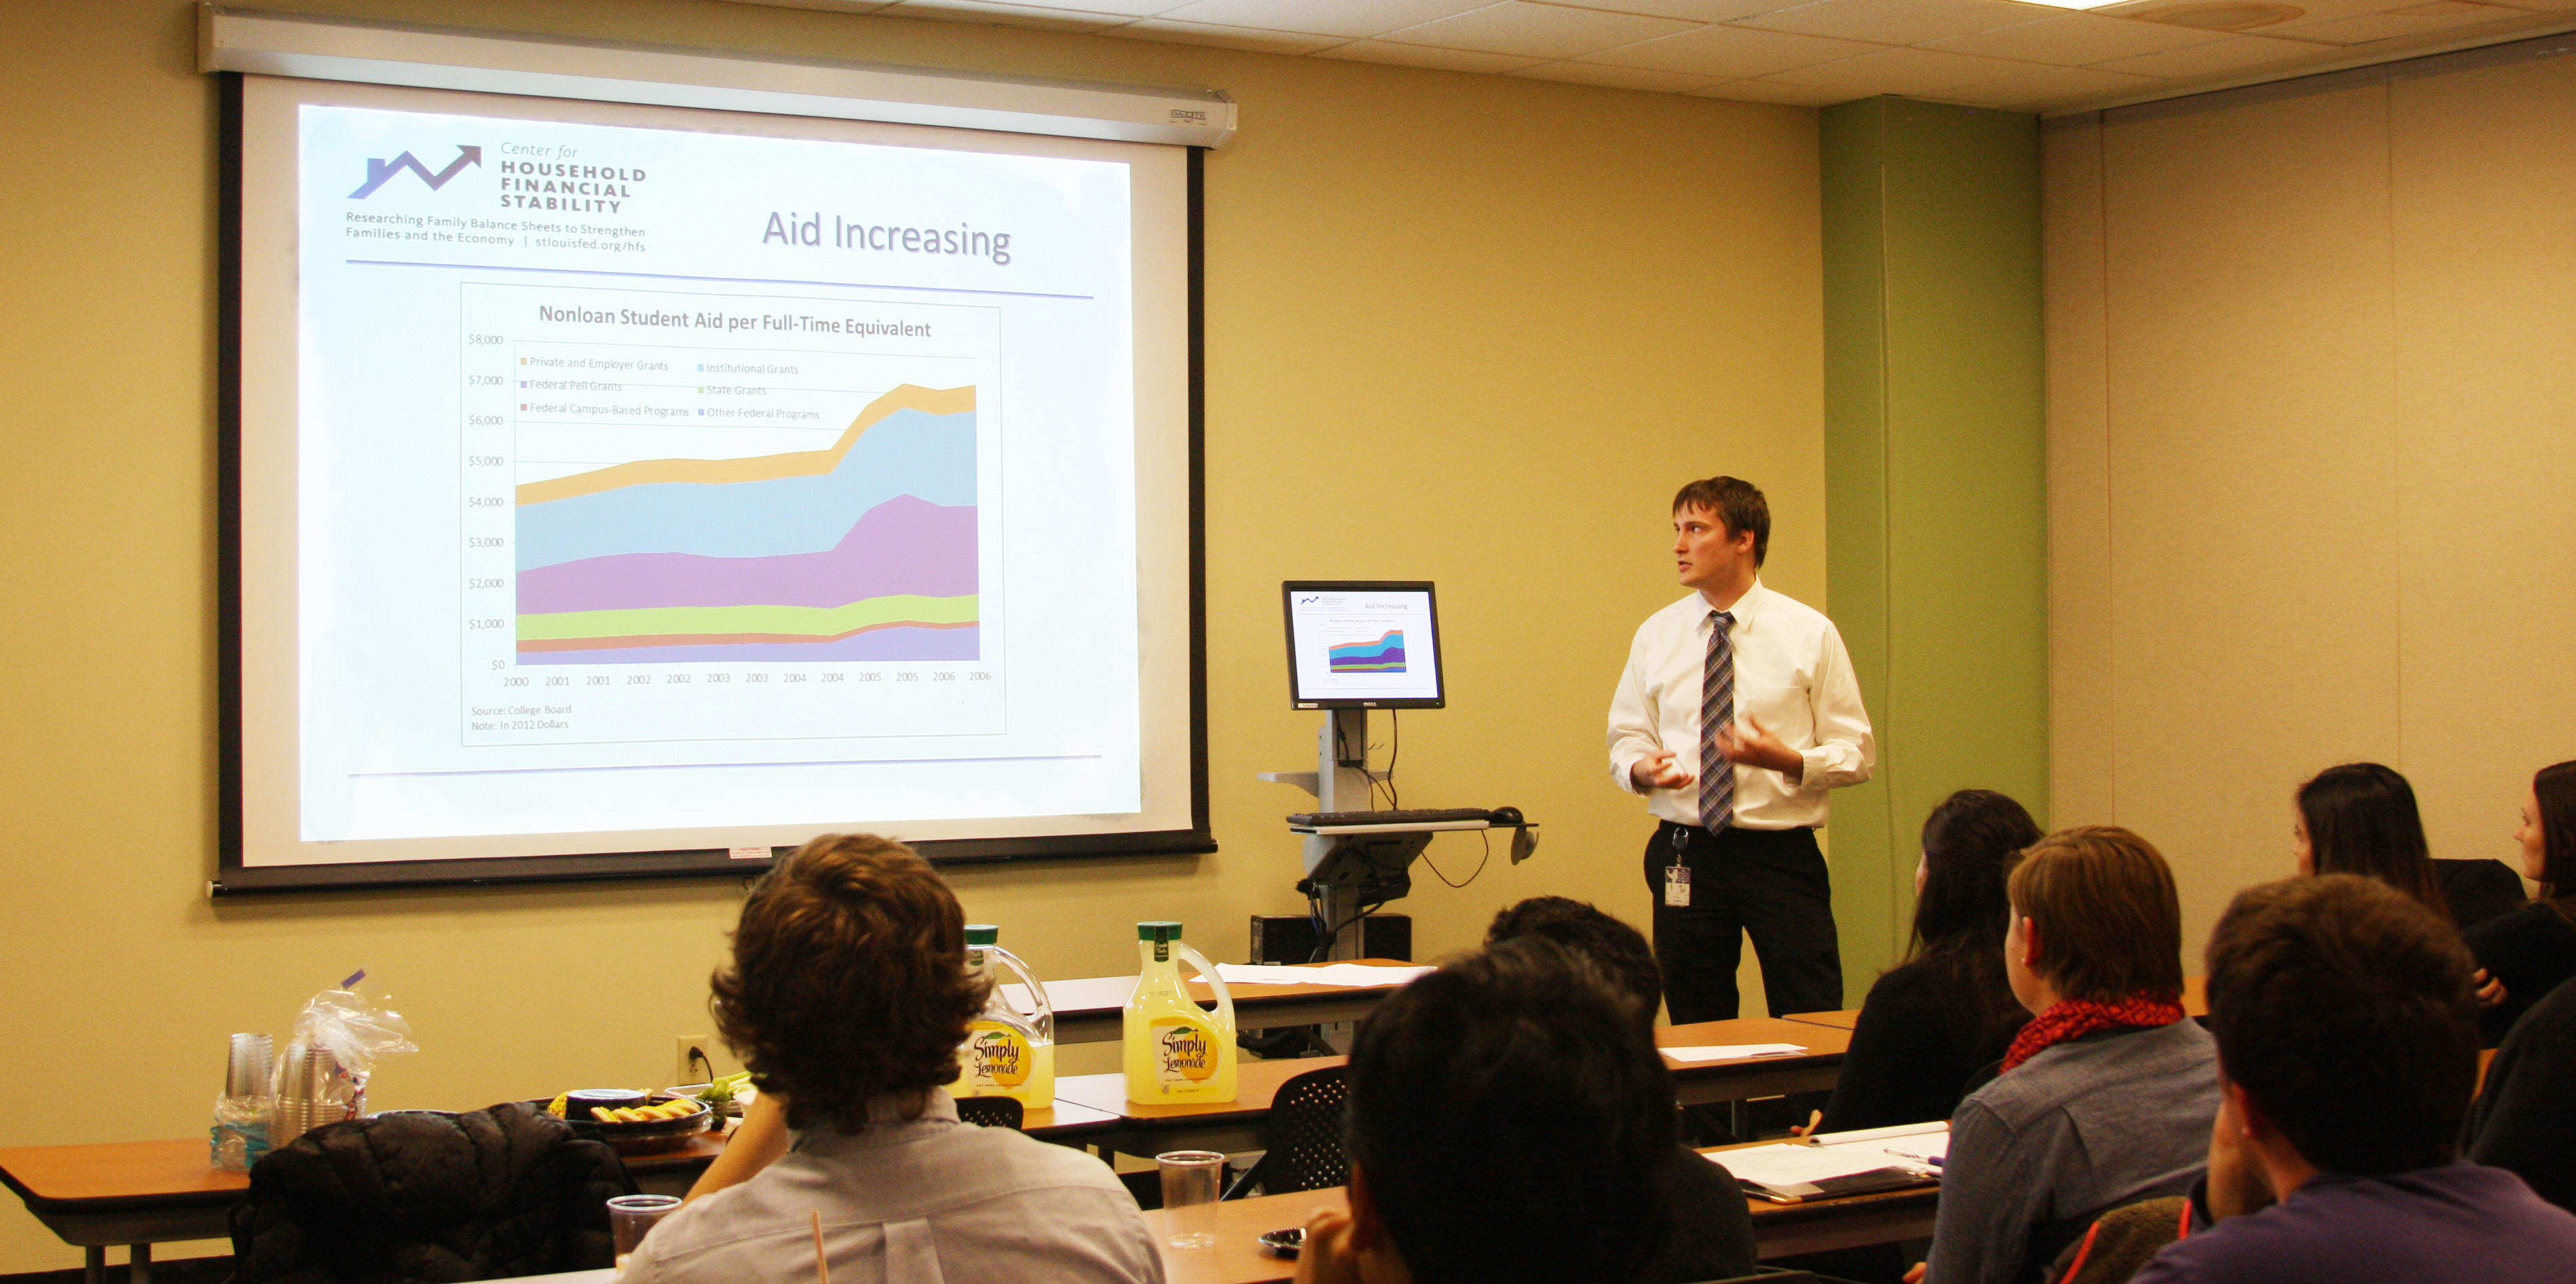 Student debt: Bryan Noeth discusses student aid increases with Atlas participants.